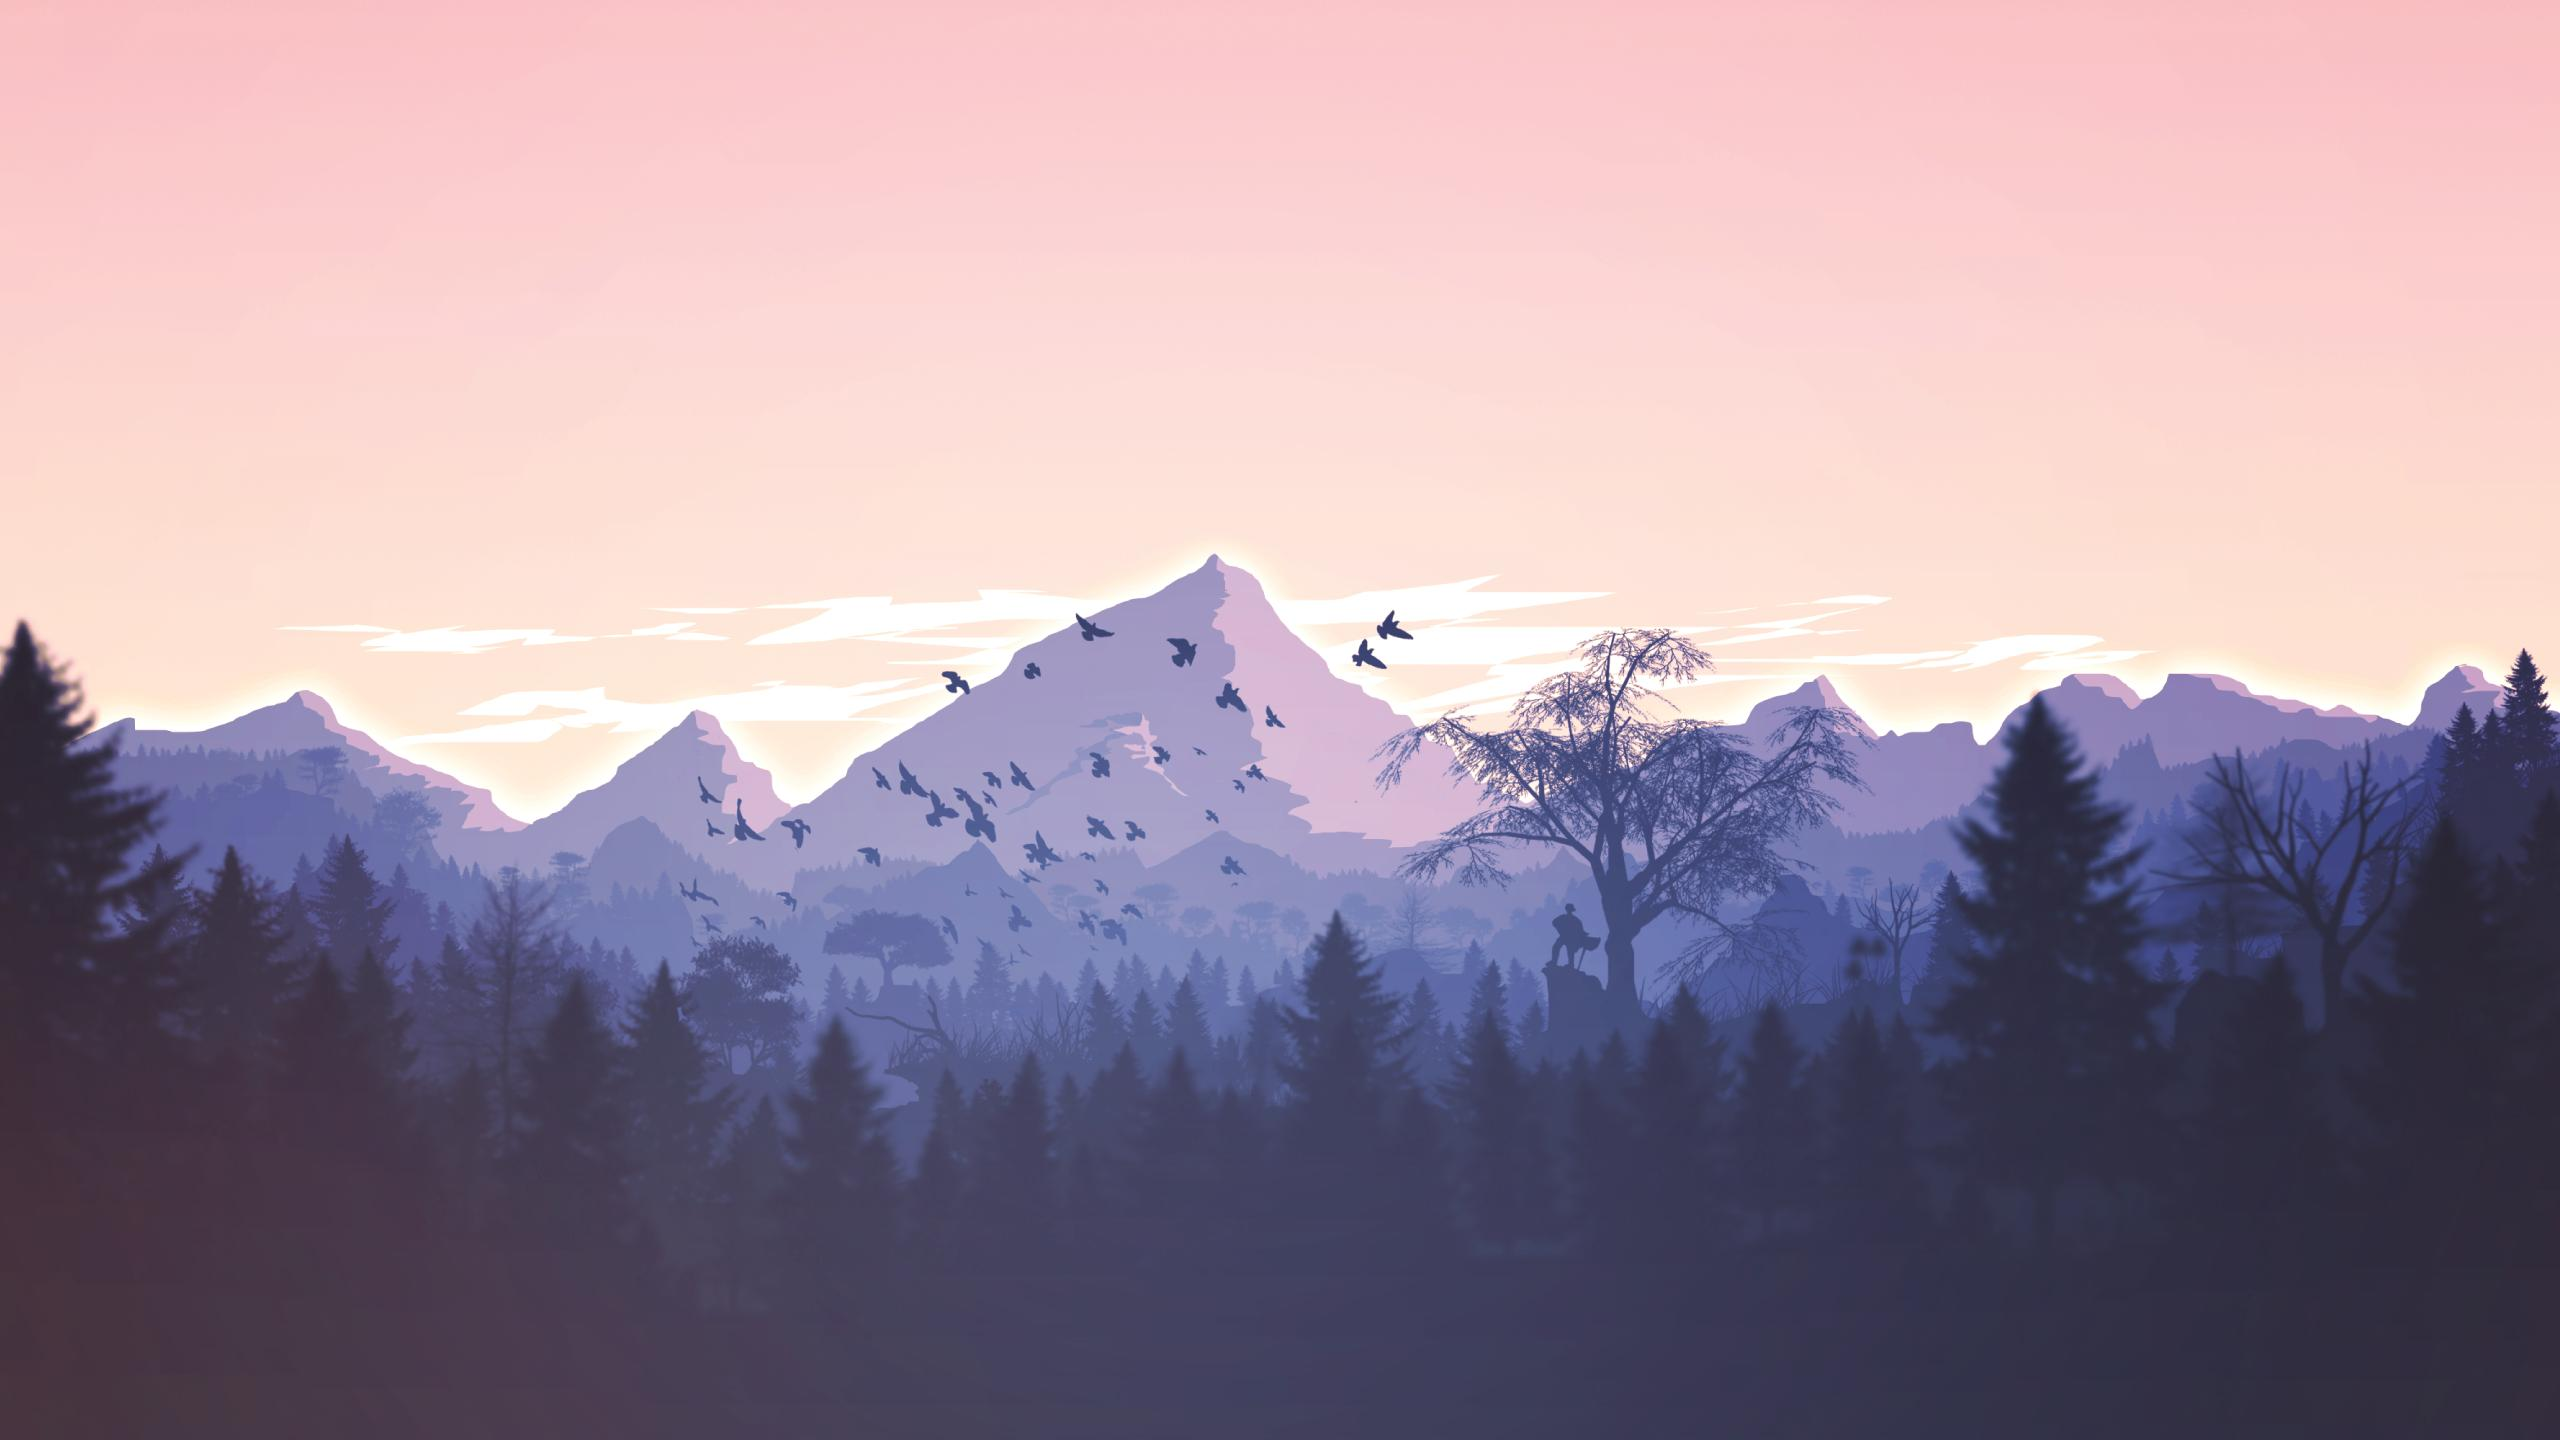 Minimalism Birds Mountains Trees Forest, HD Artist, 4k